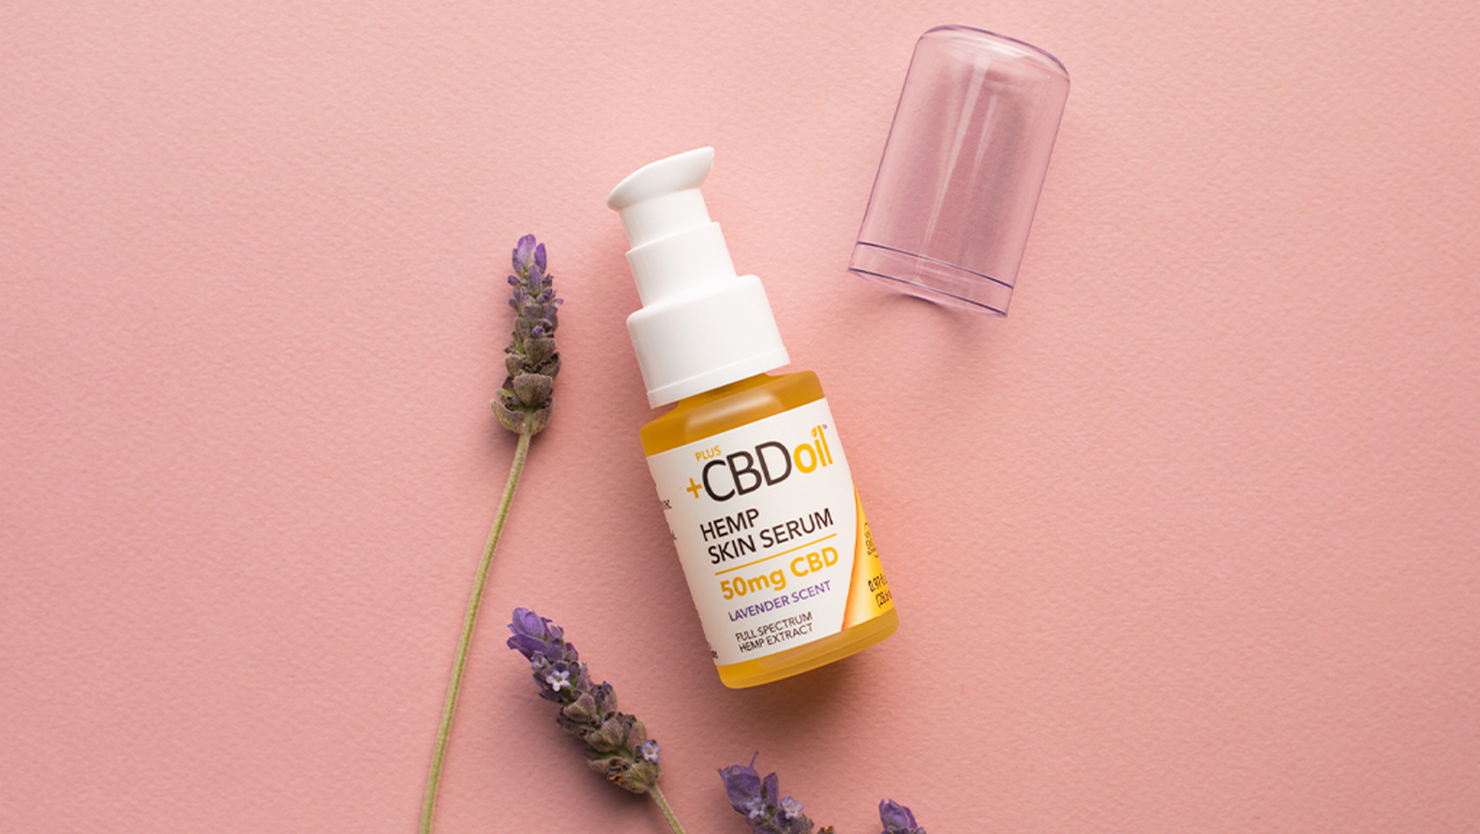 CBD Oil for After-Work Relaxation